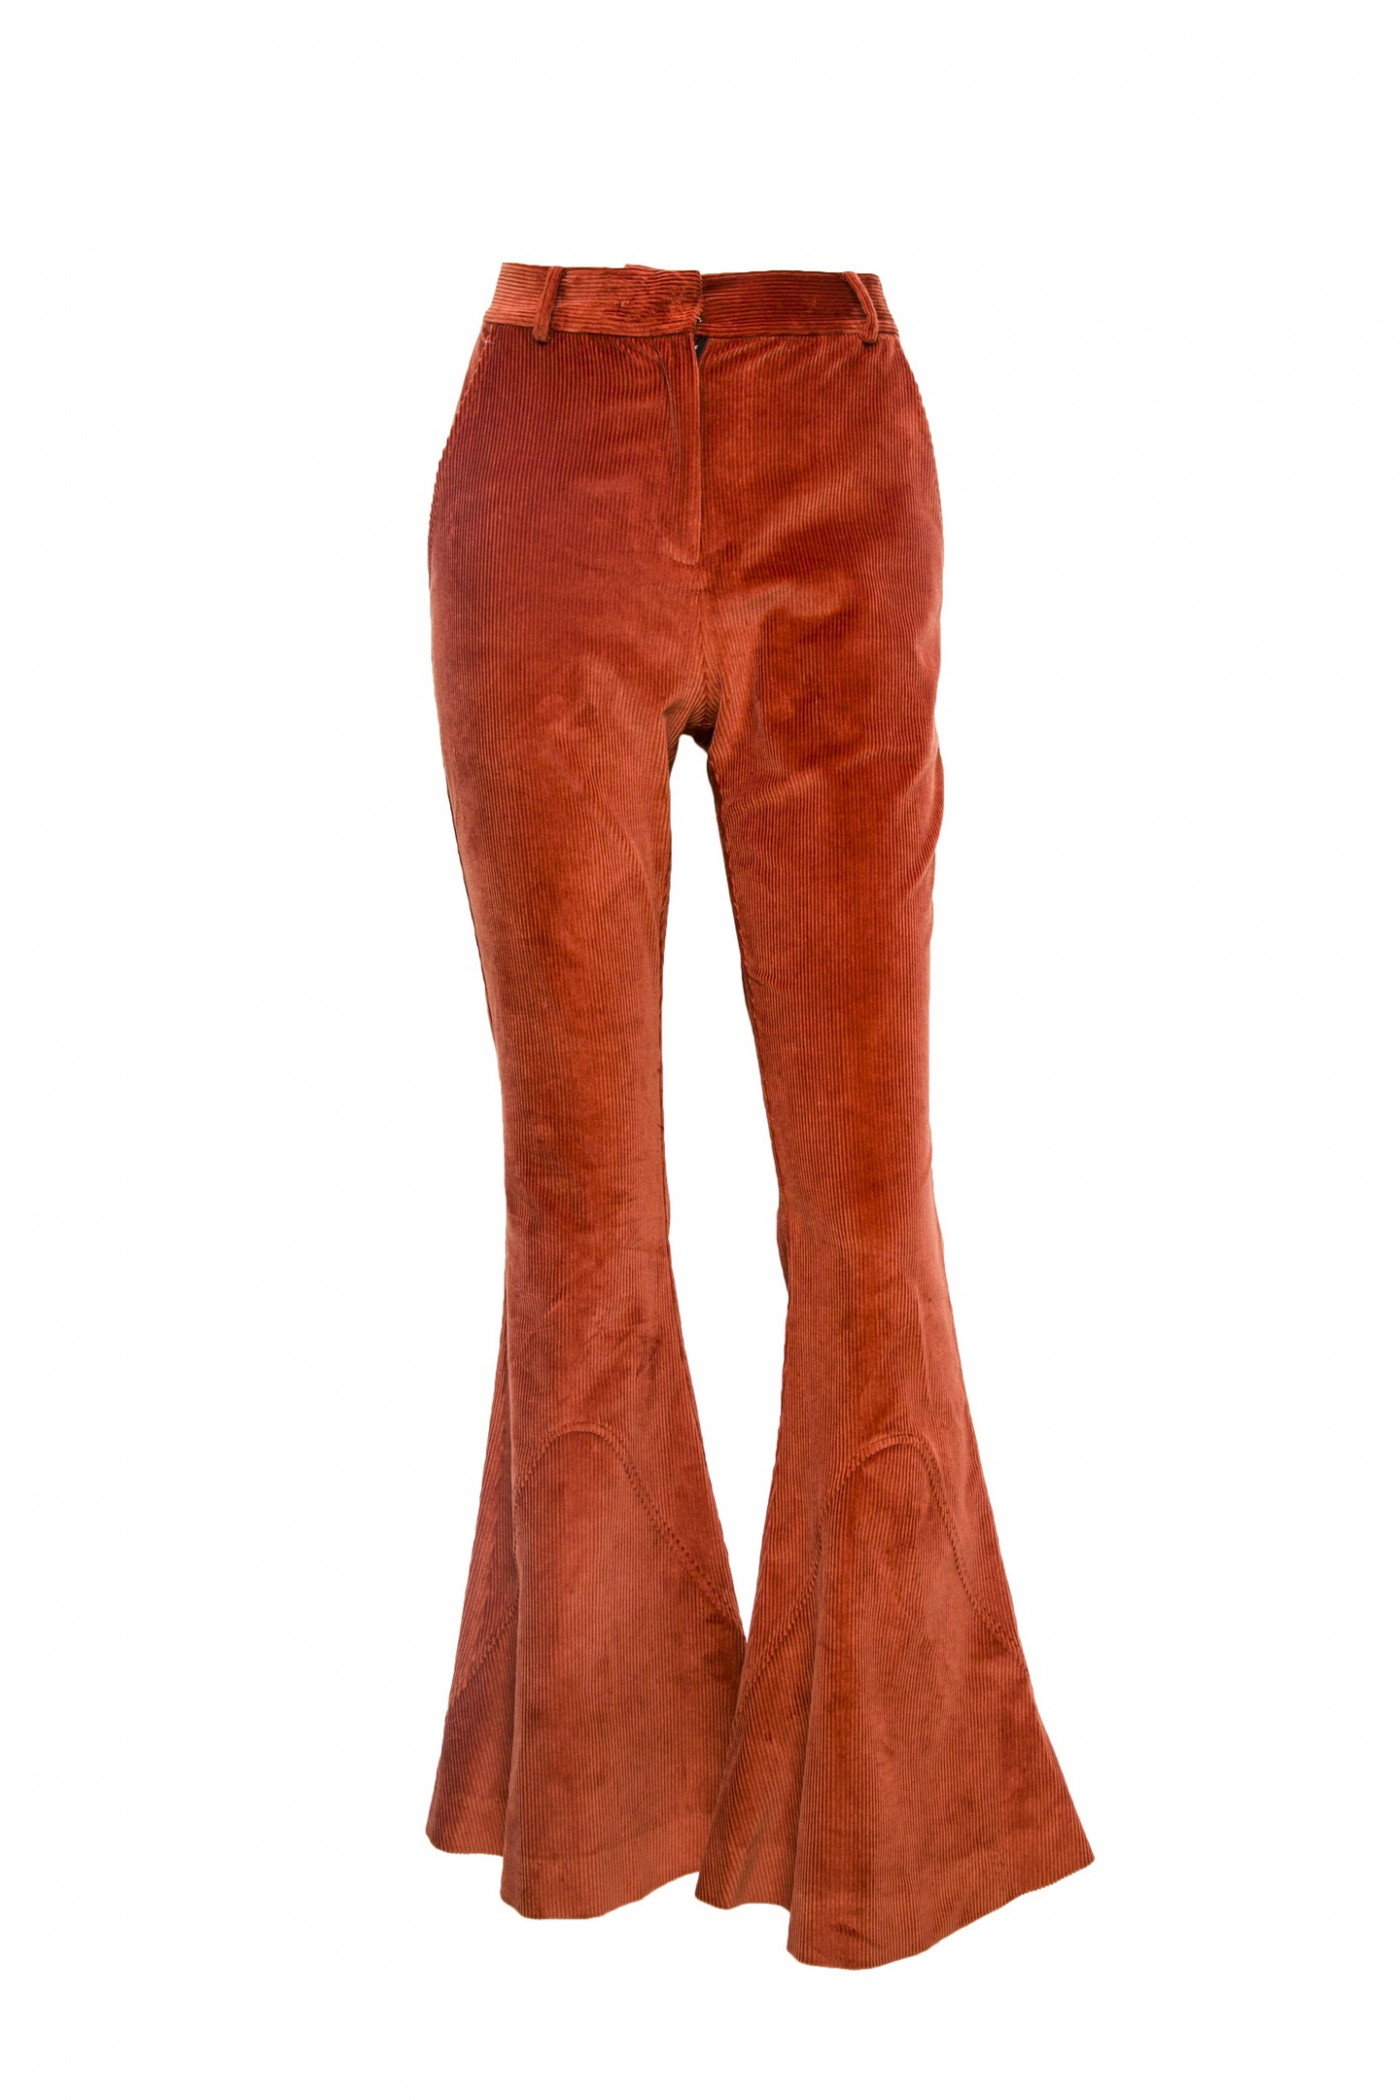 Corduroy Pant with Slight Flare